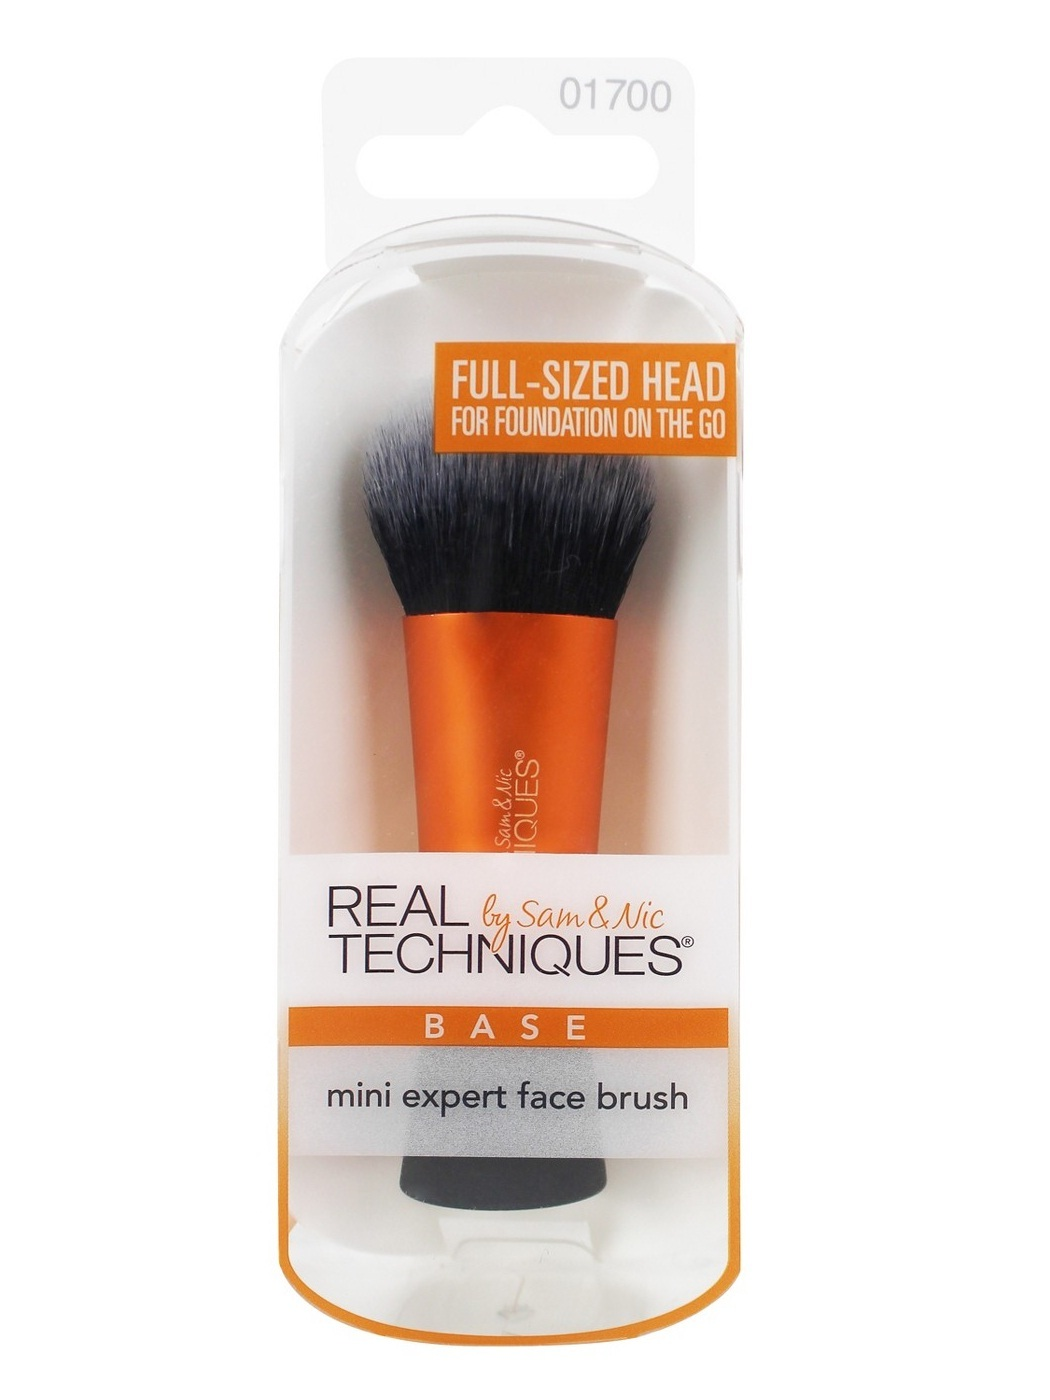 Real Techniques Mini Expert Face Brush.jpg